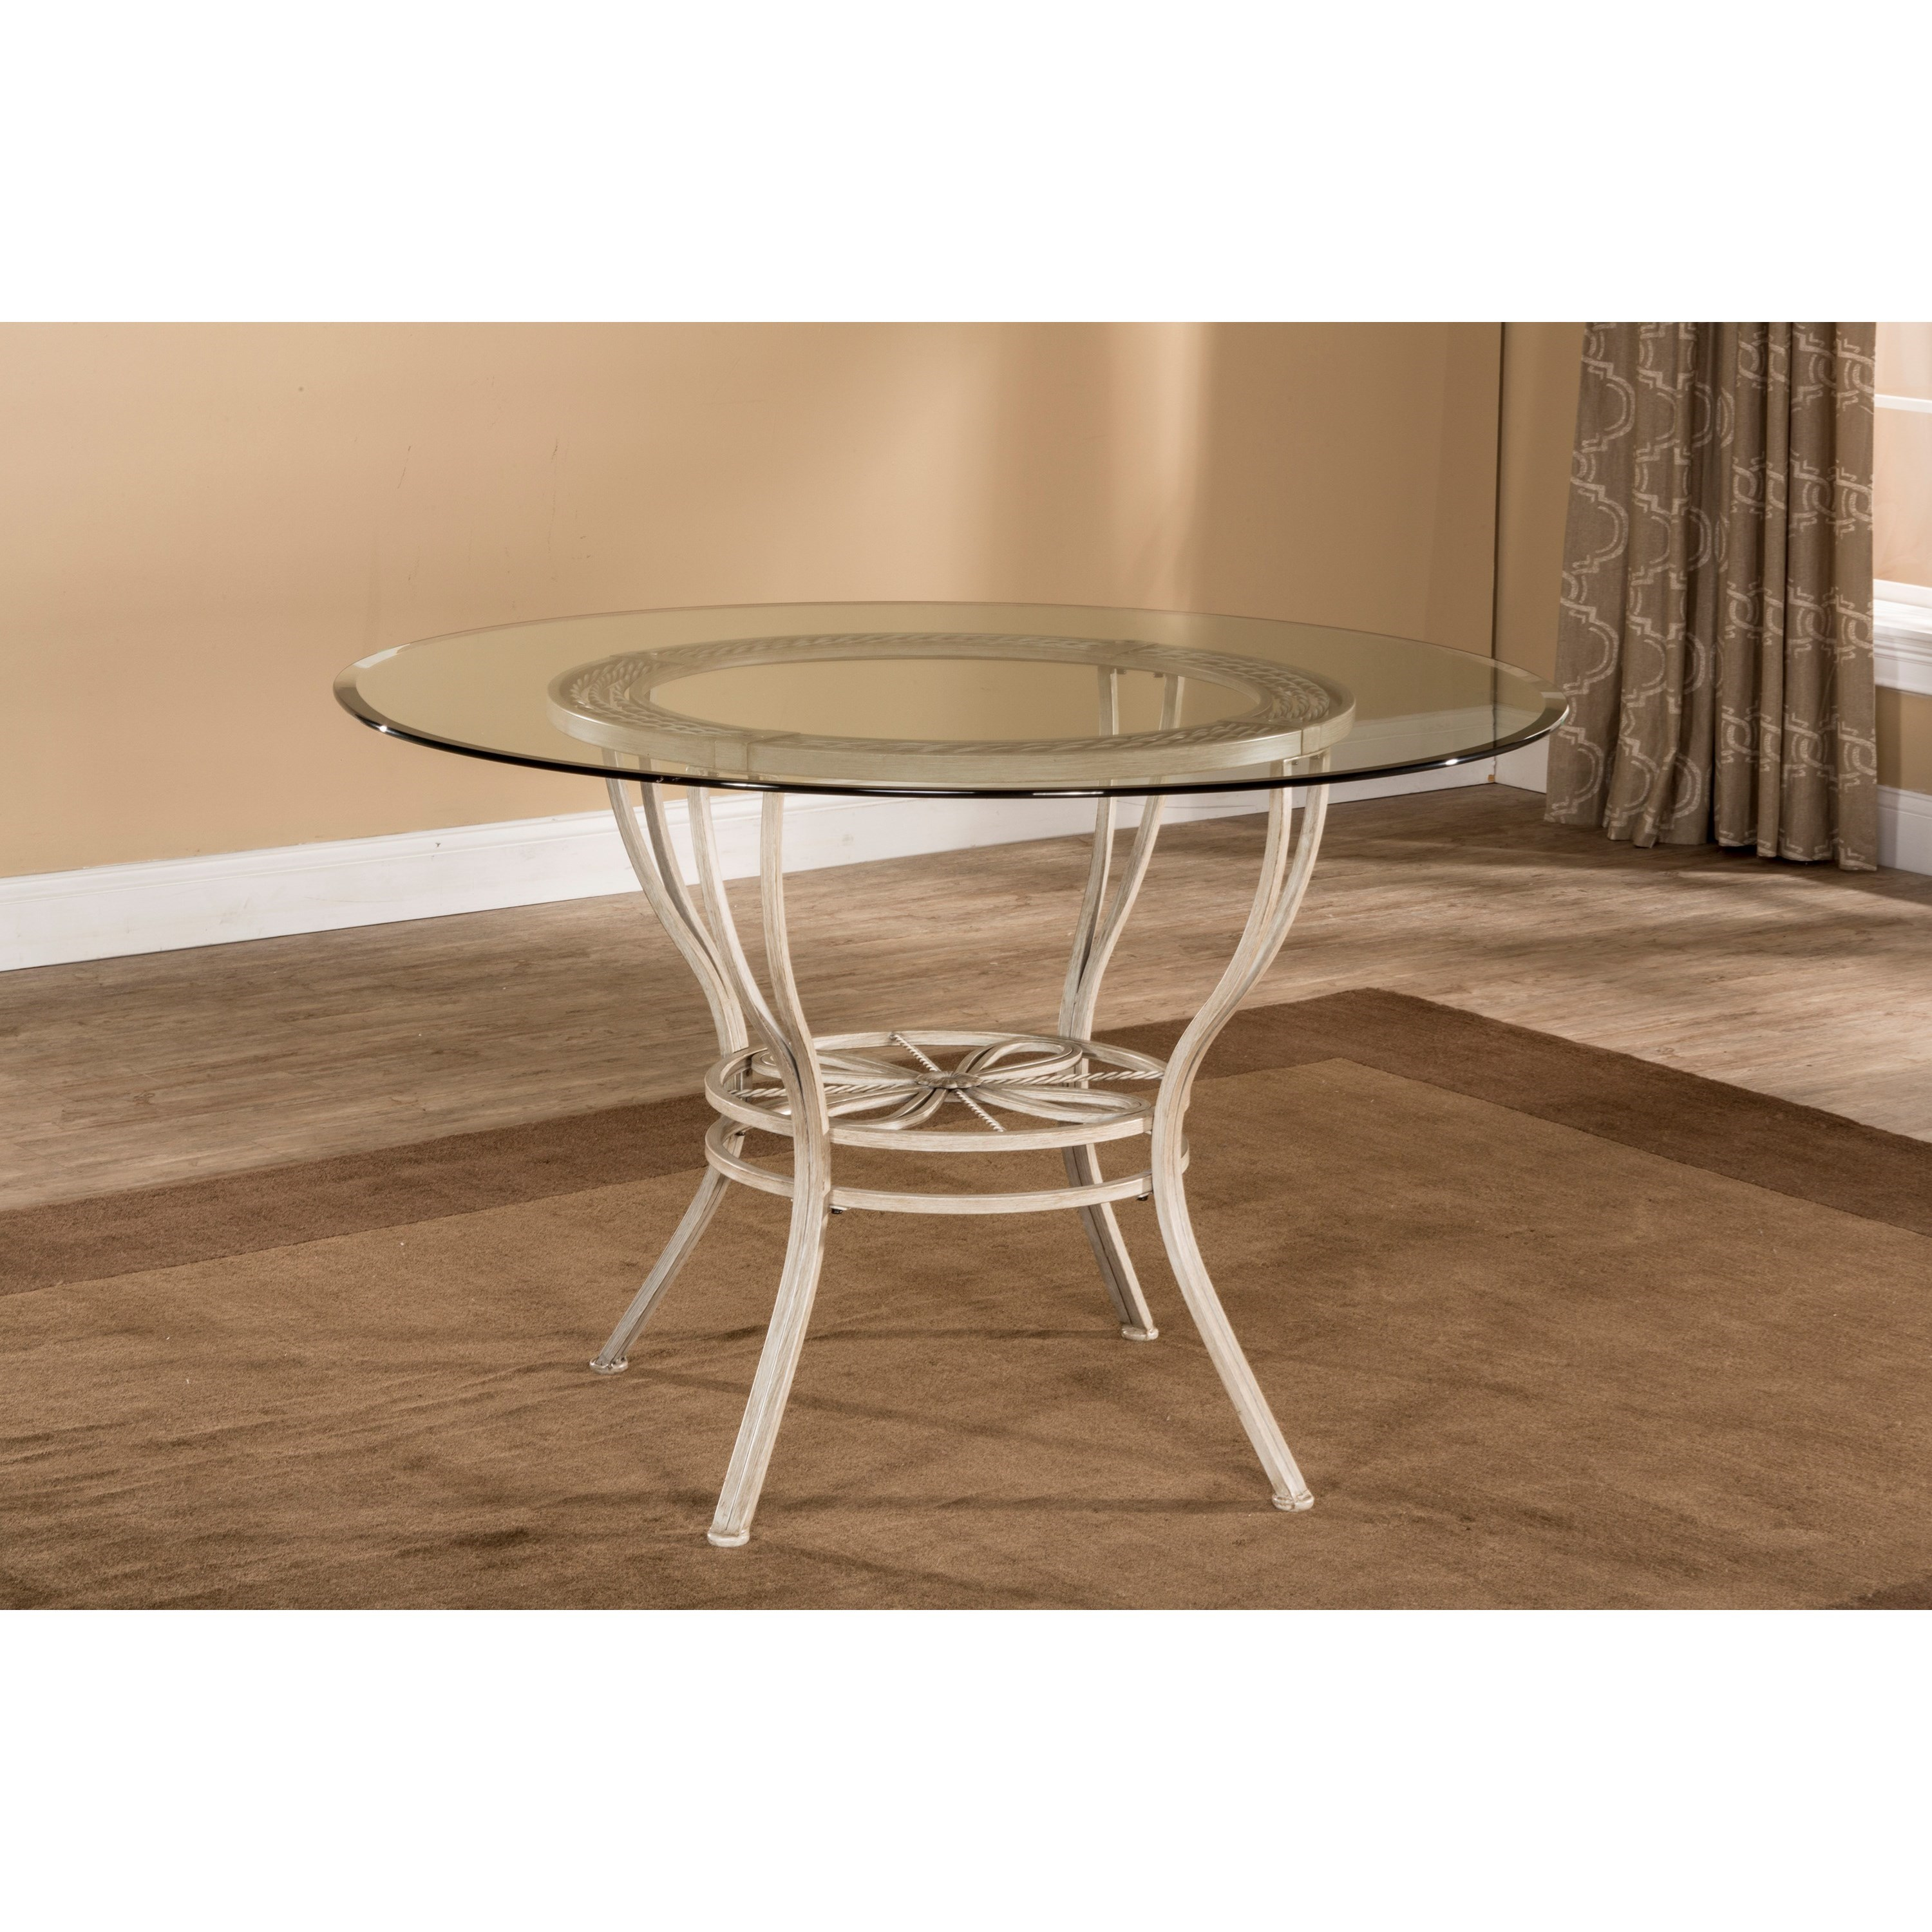 Napier Round Dining Table at Ruby Gordon Home